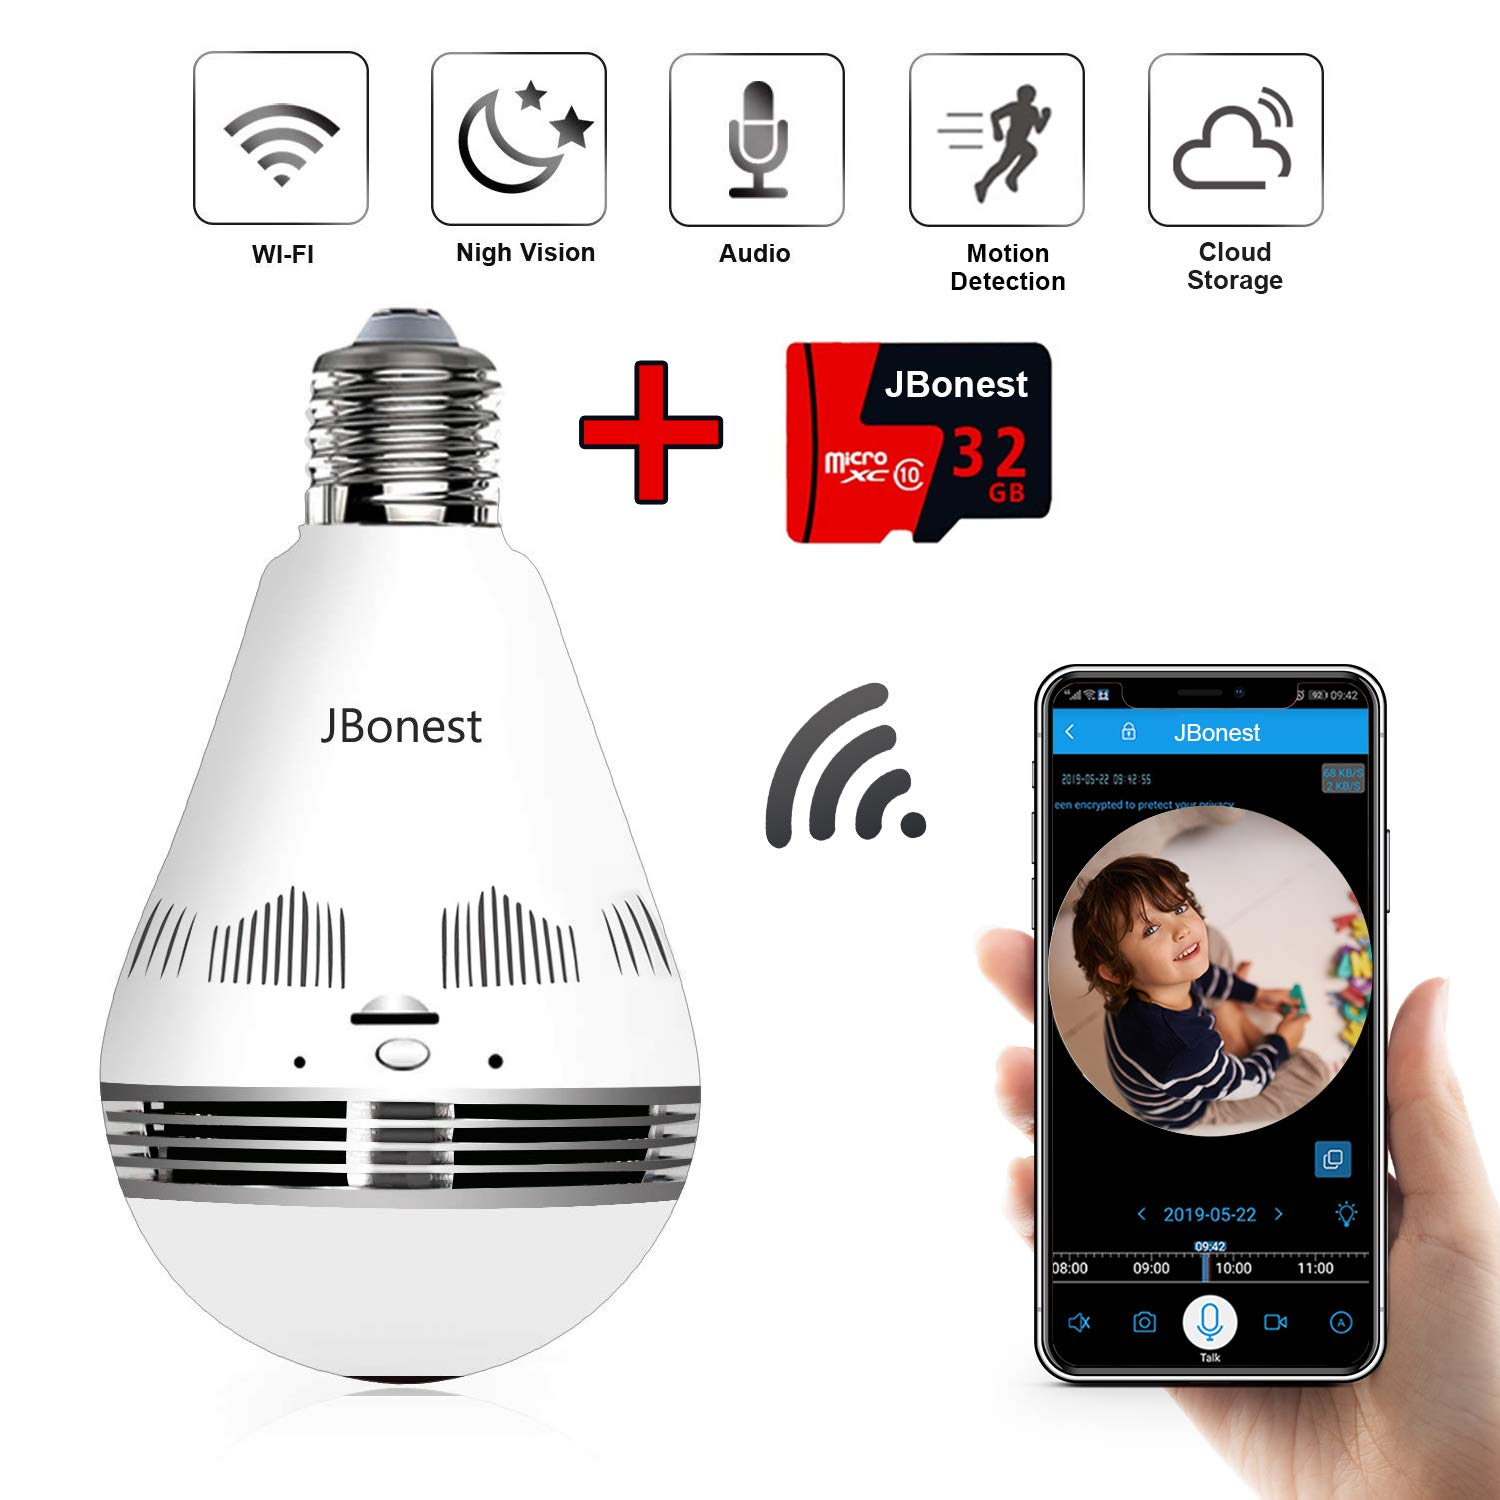 JBonest Panoramic Light Bulb Camera, 1080P IP Security WiFi Camera with 32GB SD Card, Night Vision, Real Time Audio and Motion Detection for Home Baby Pet